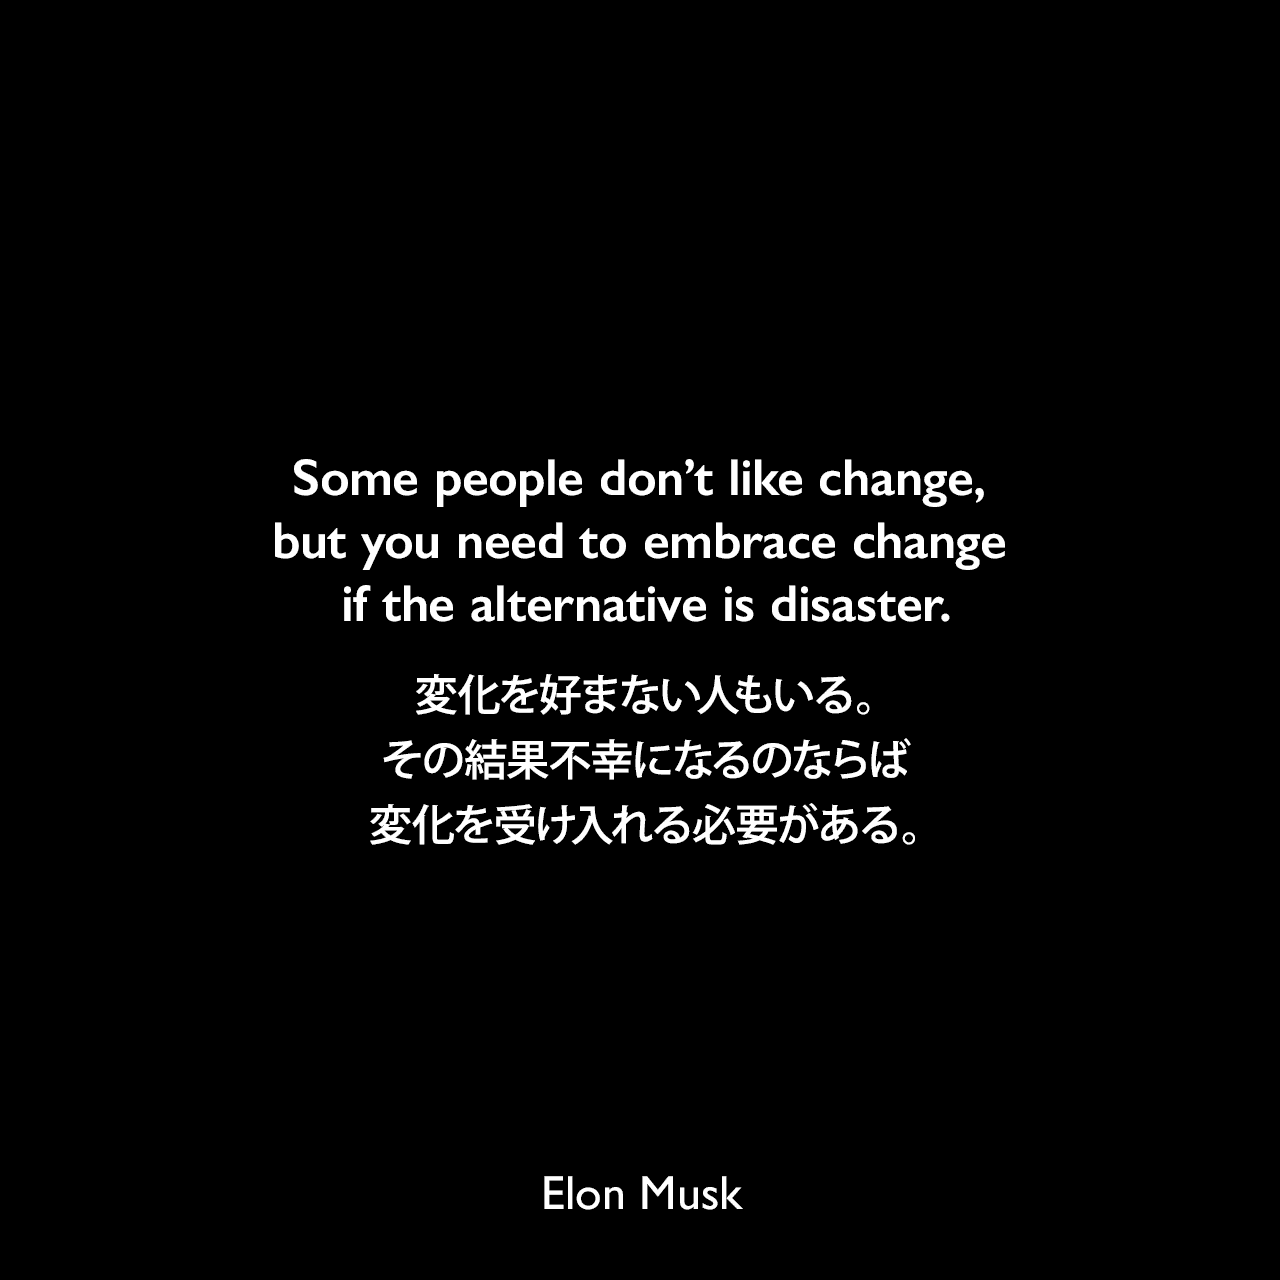 Some people don't like change, but you need to embrace change if the alternative is disaster.変化を好まない人もいる。その結果不幸になるのならば、変化を受け入れる必要がある。Elon Musk